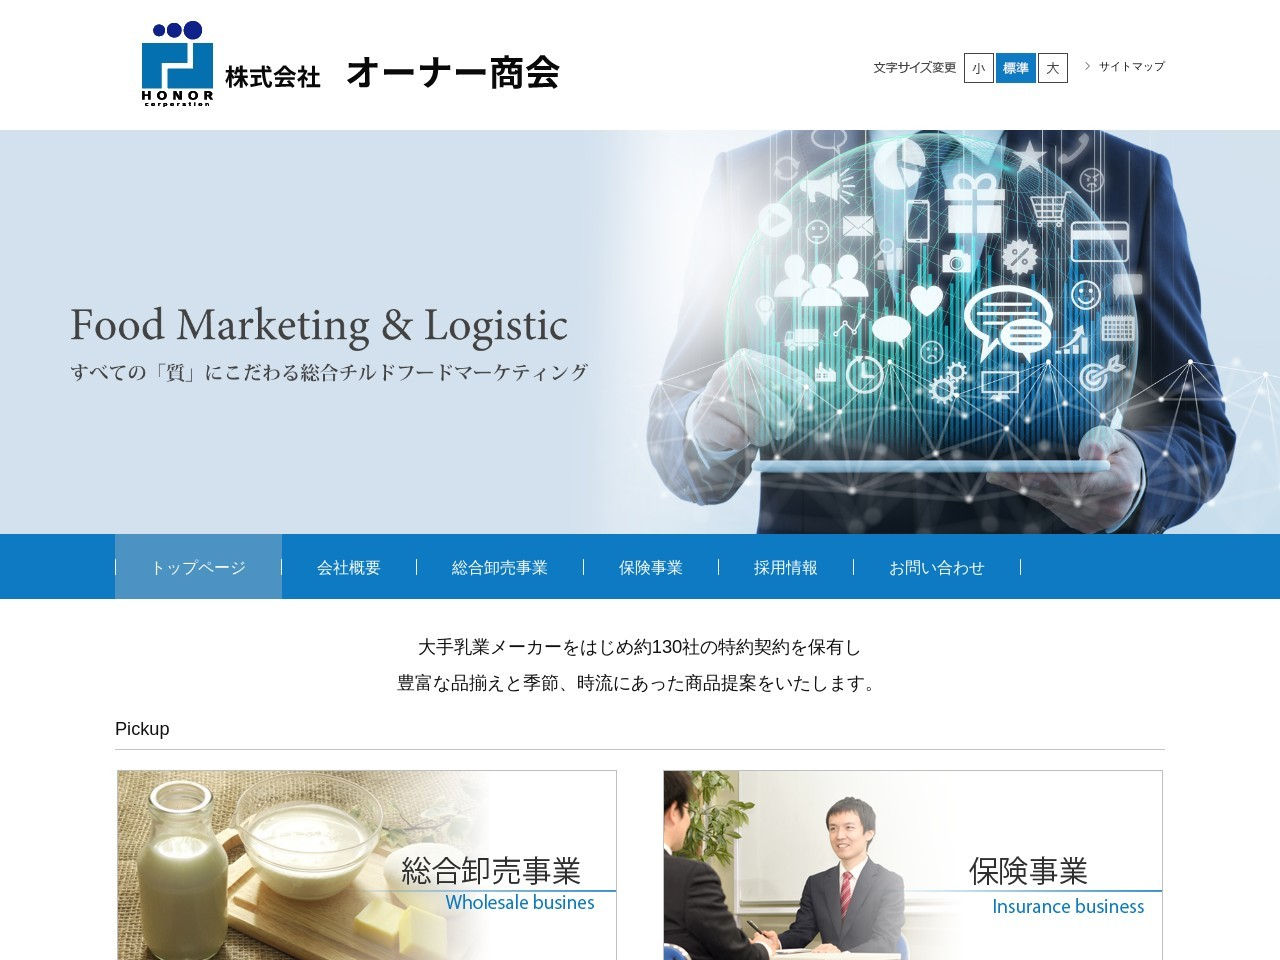 オーナー商会●Food Marketing&Logistics